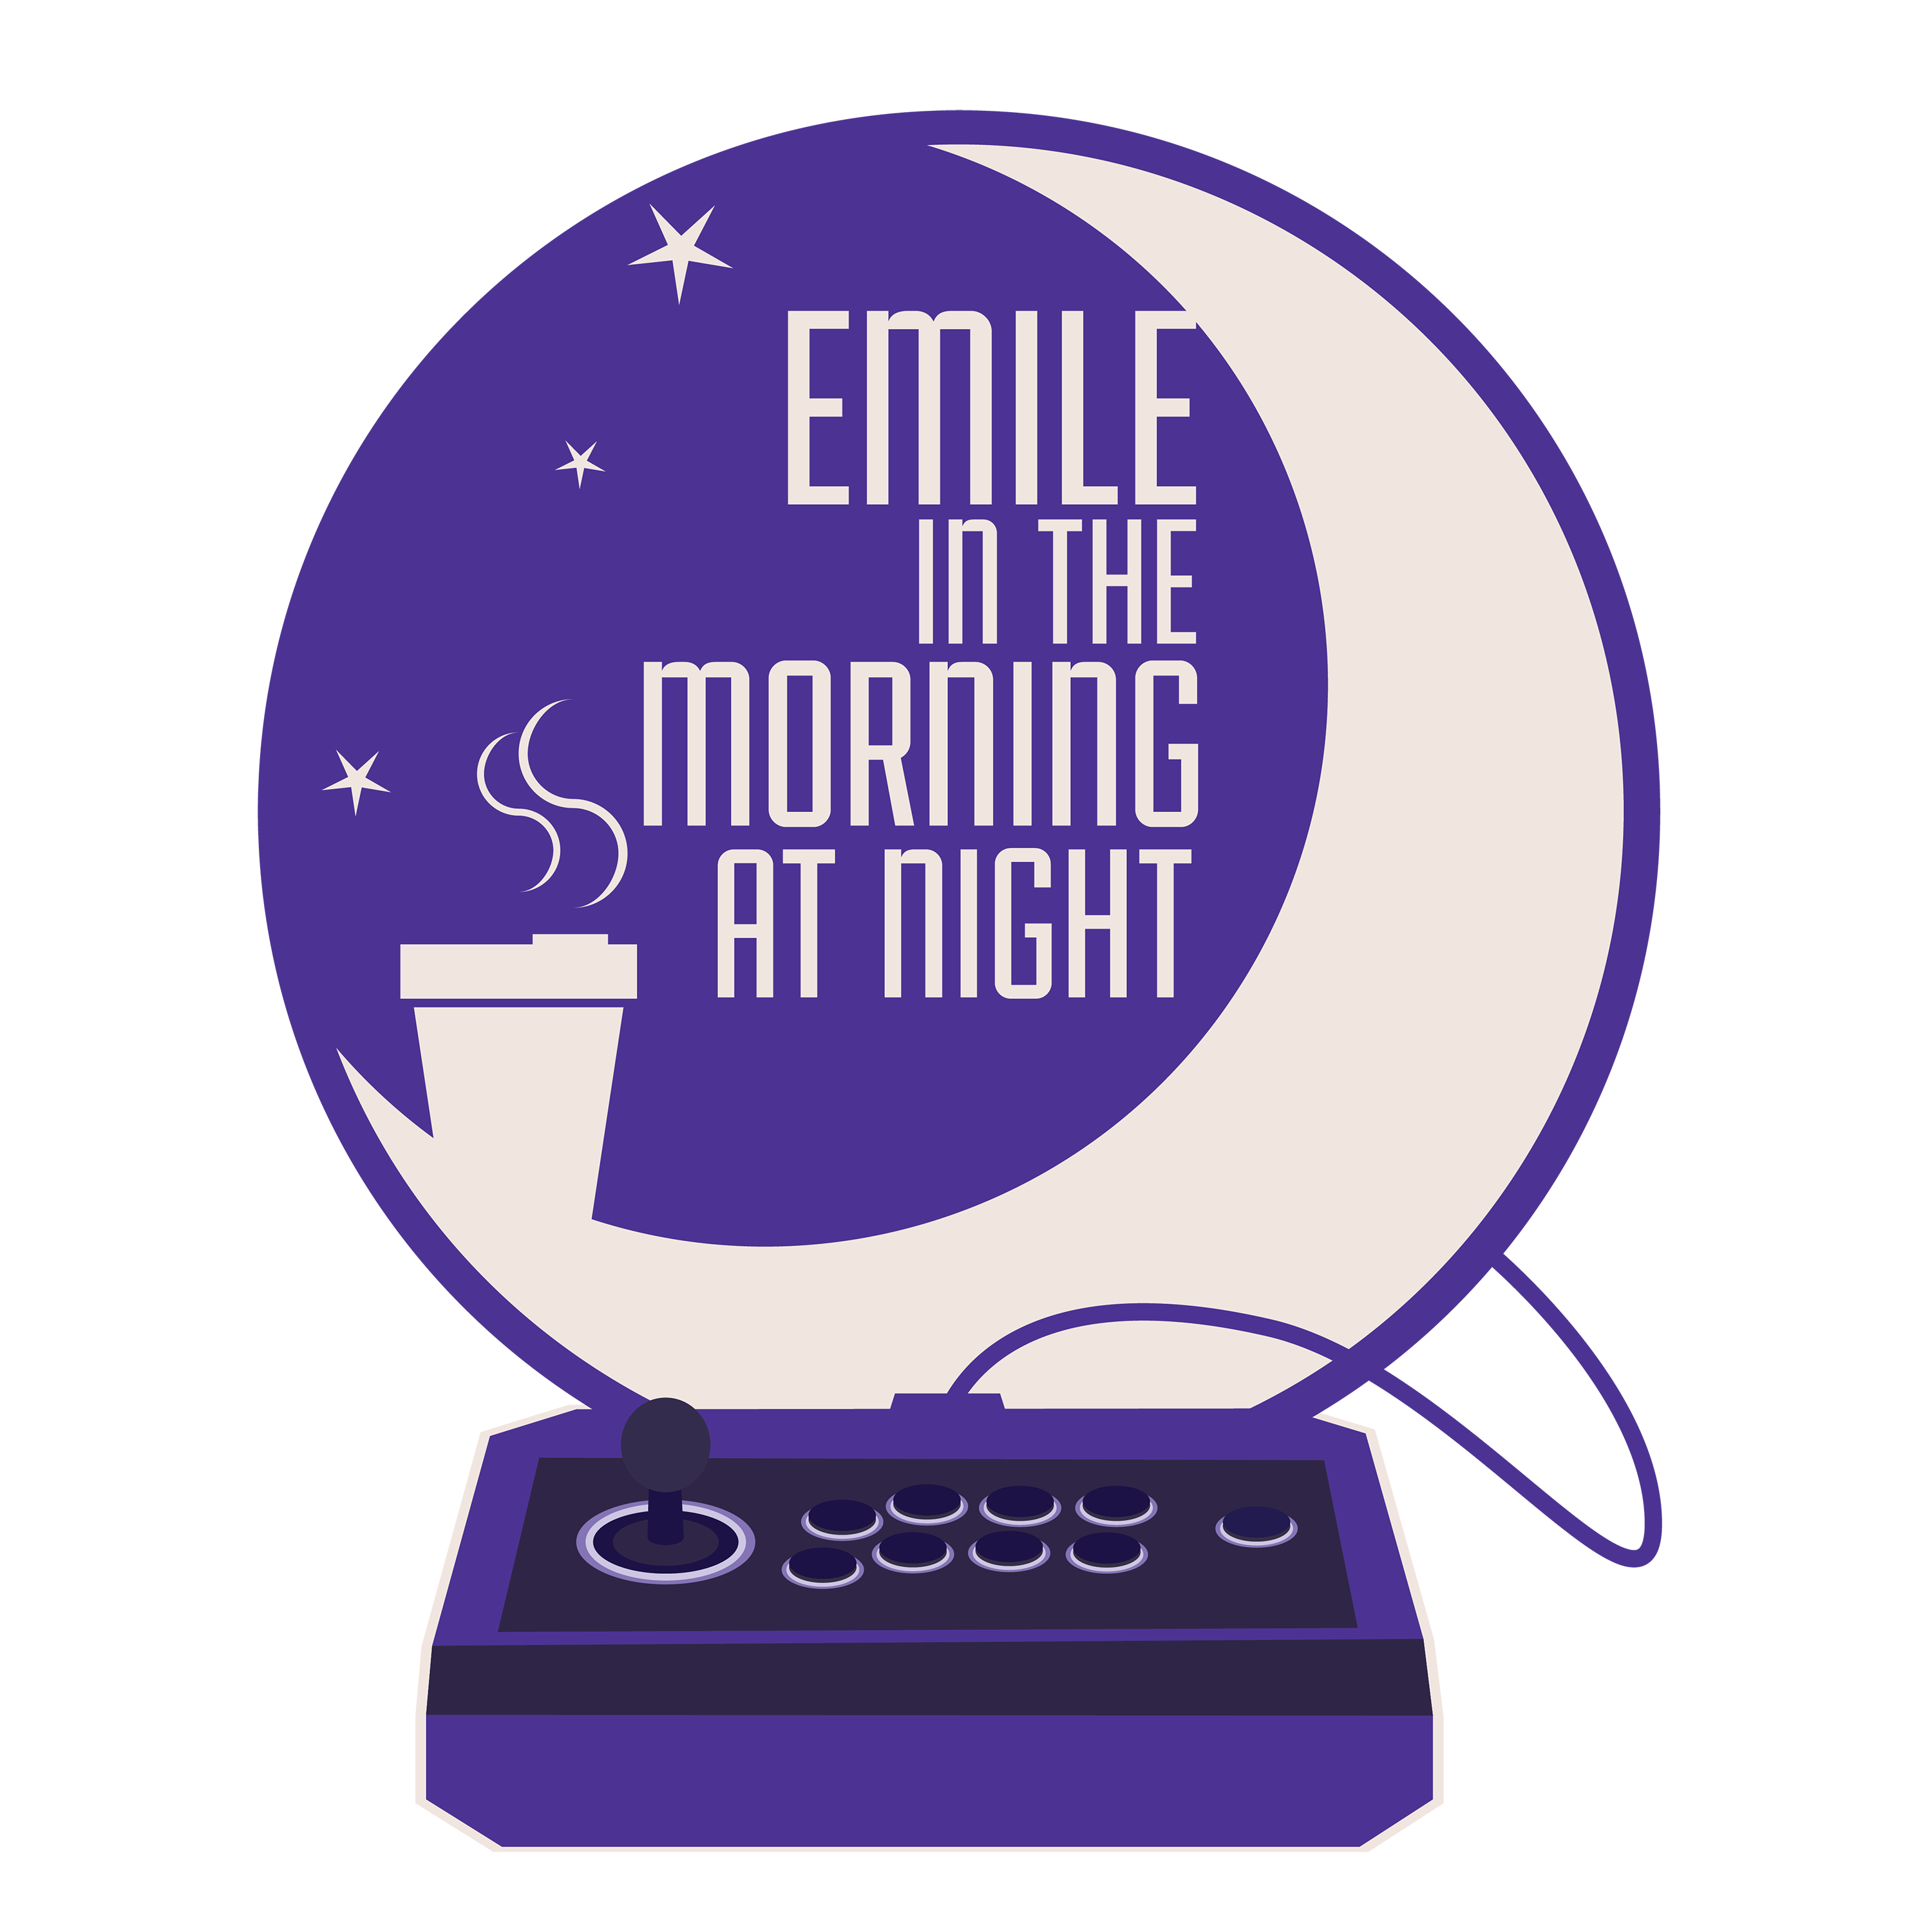 Emile in the Morning at Night